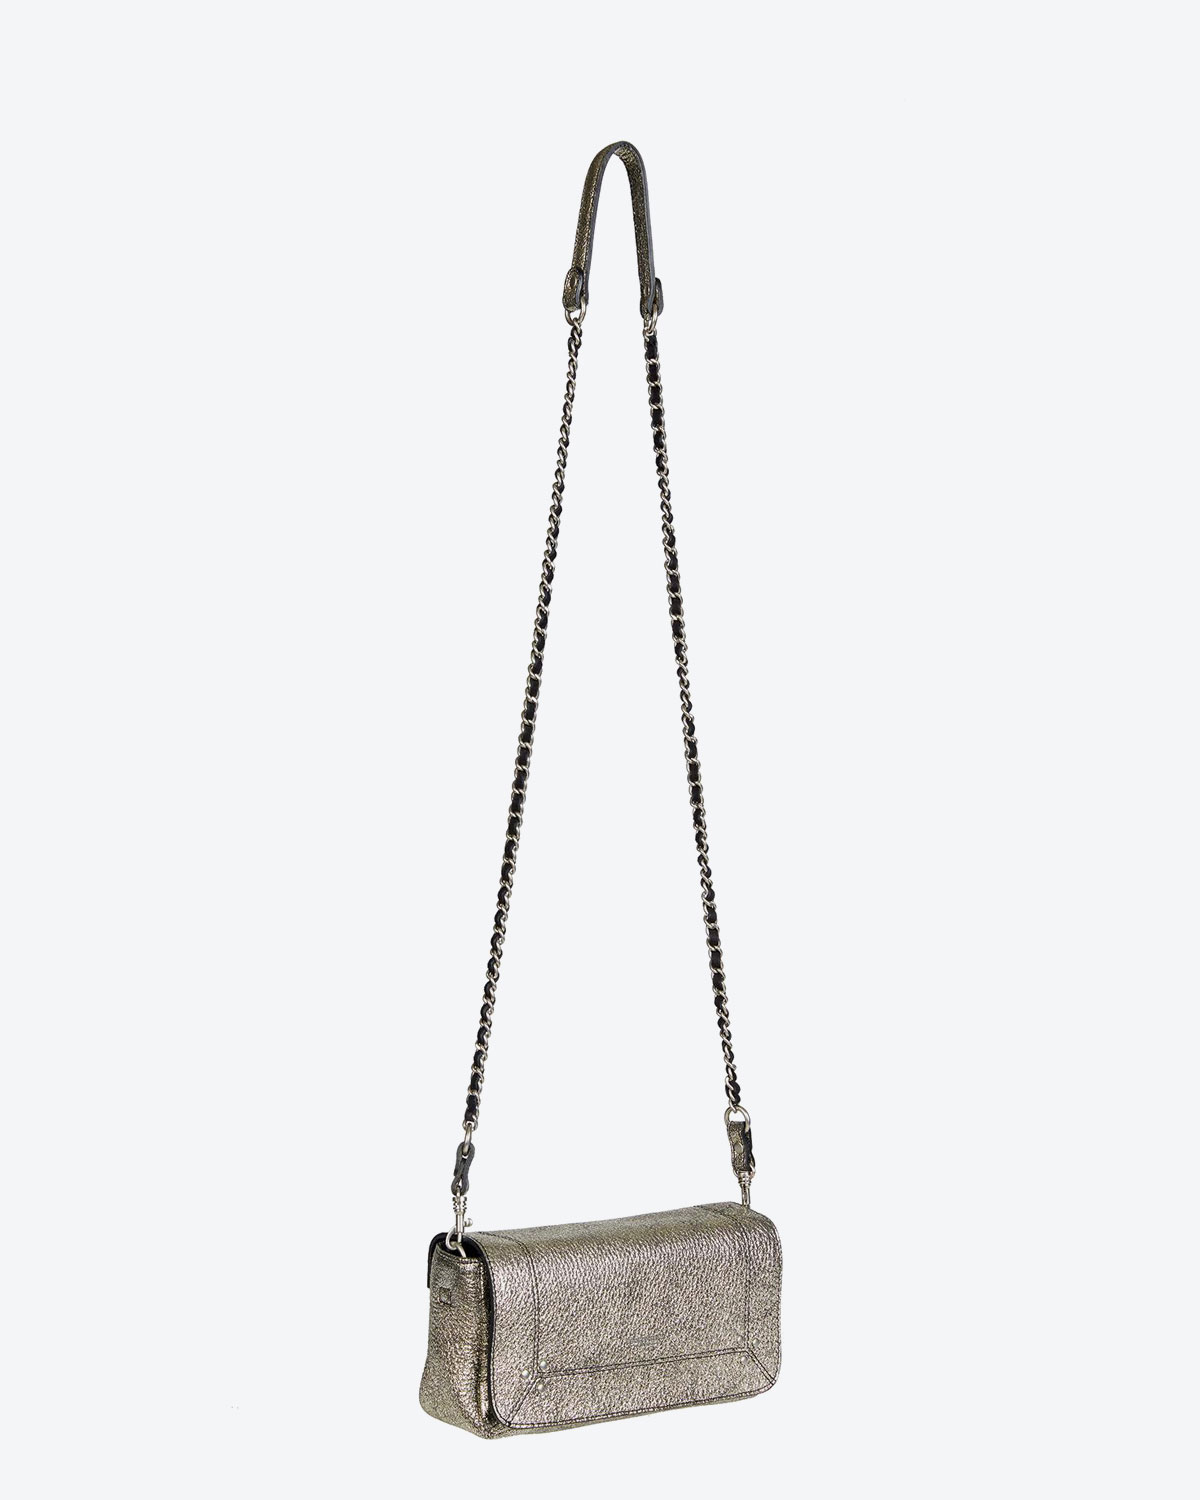 Jérôme Dreyfuss Collection Bob Laminé Silver Goatskin